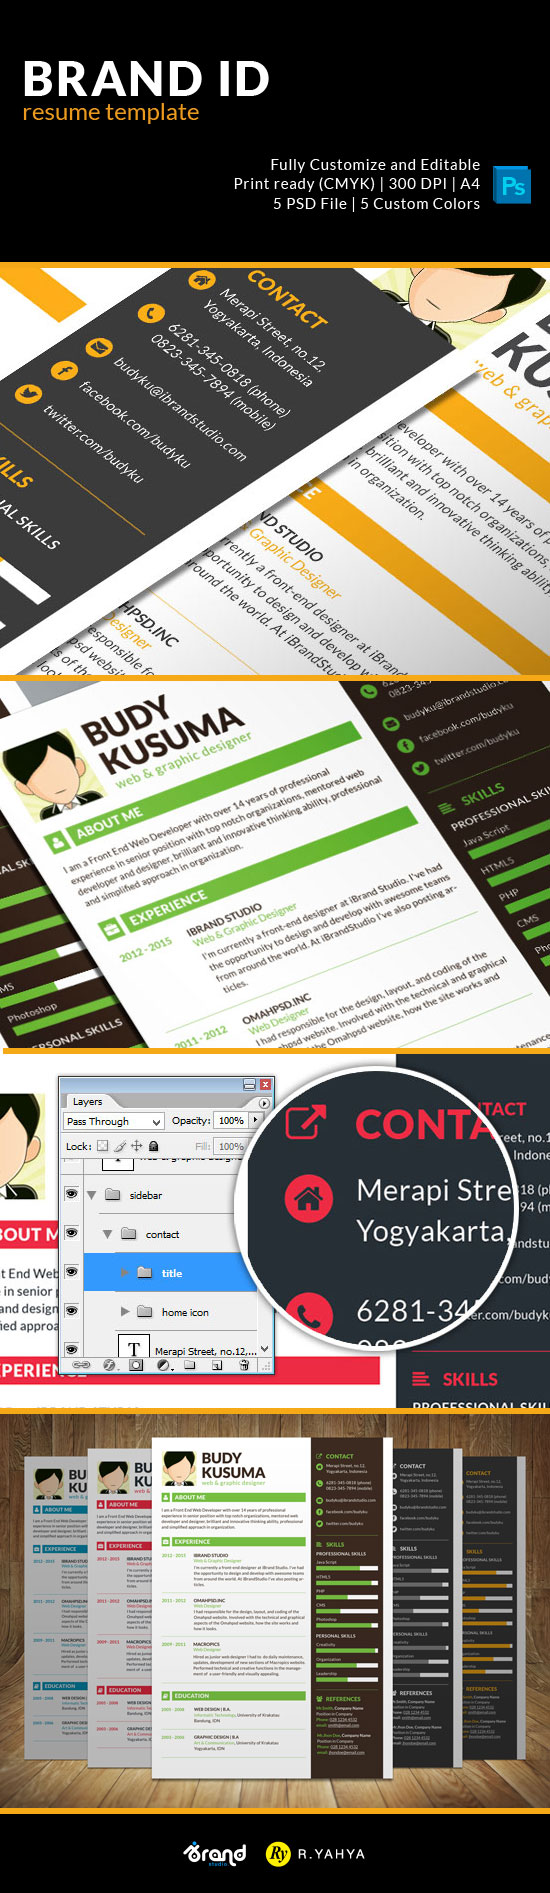 Free Resume Designs For Web and Graphic Designers